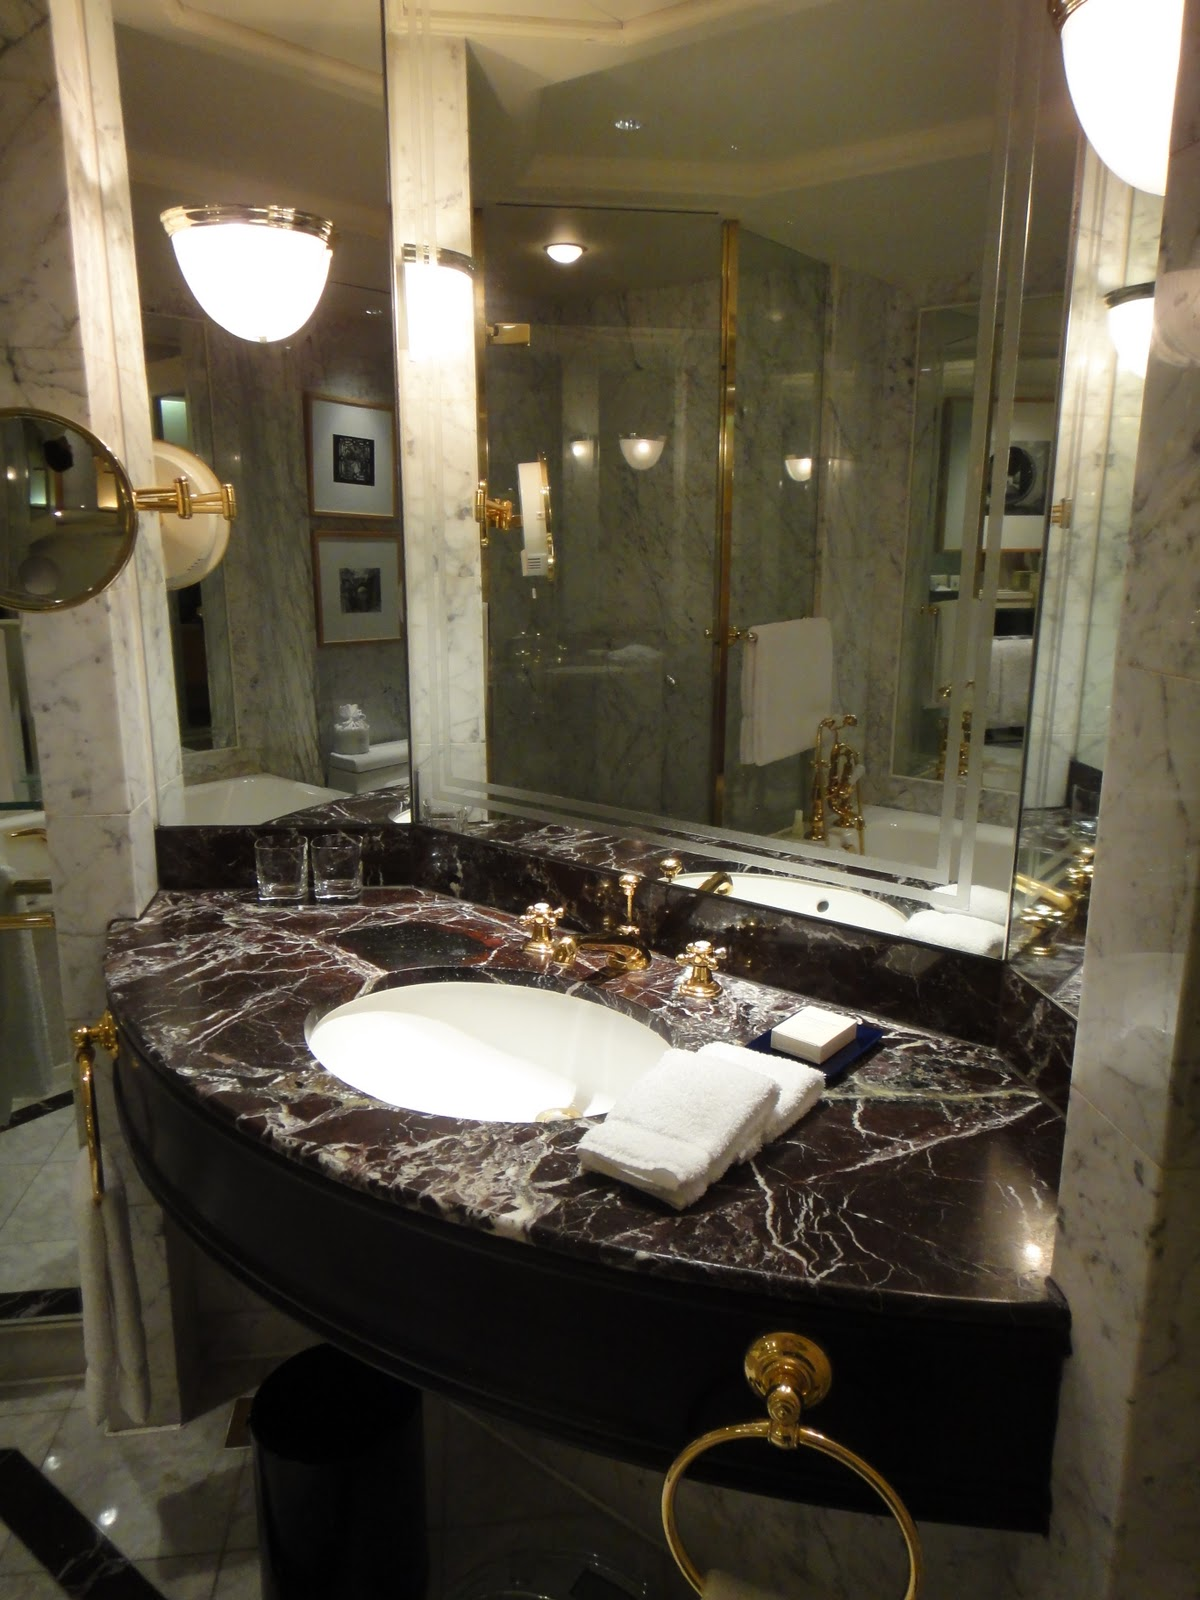 Creative In This Bathroom  A Vibrantly Patterned Black And White Stone Adds